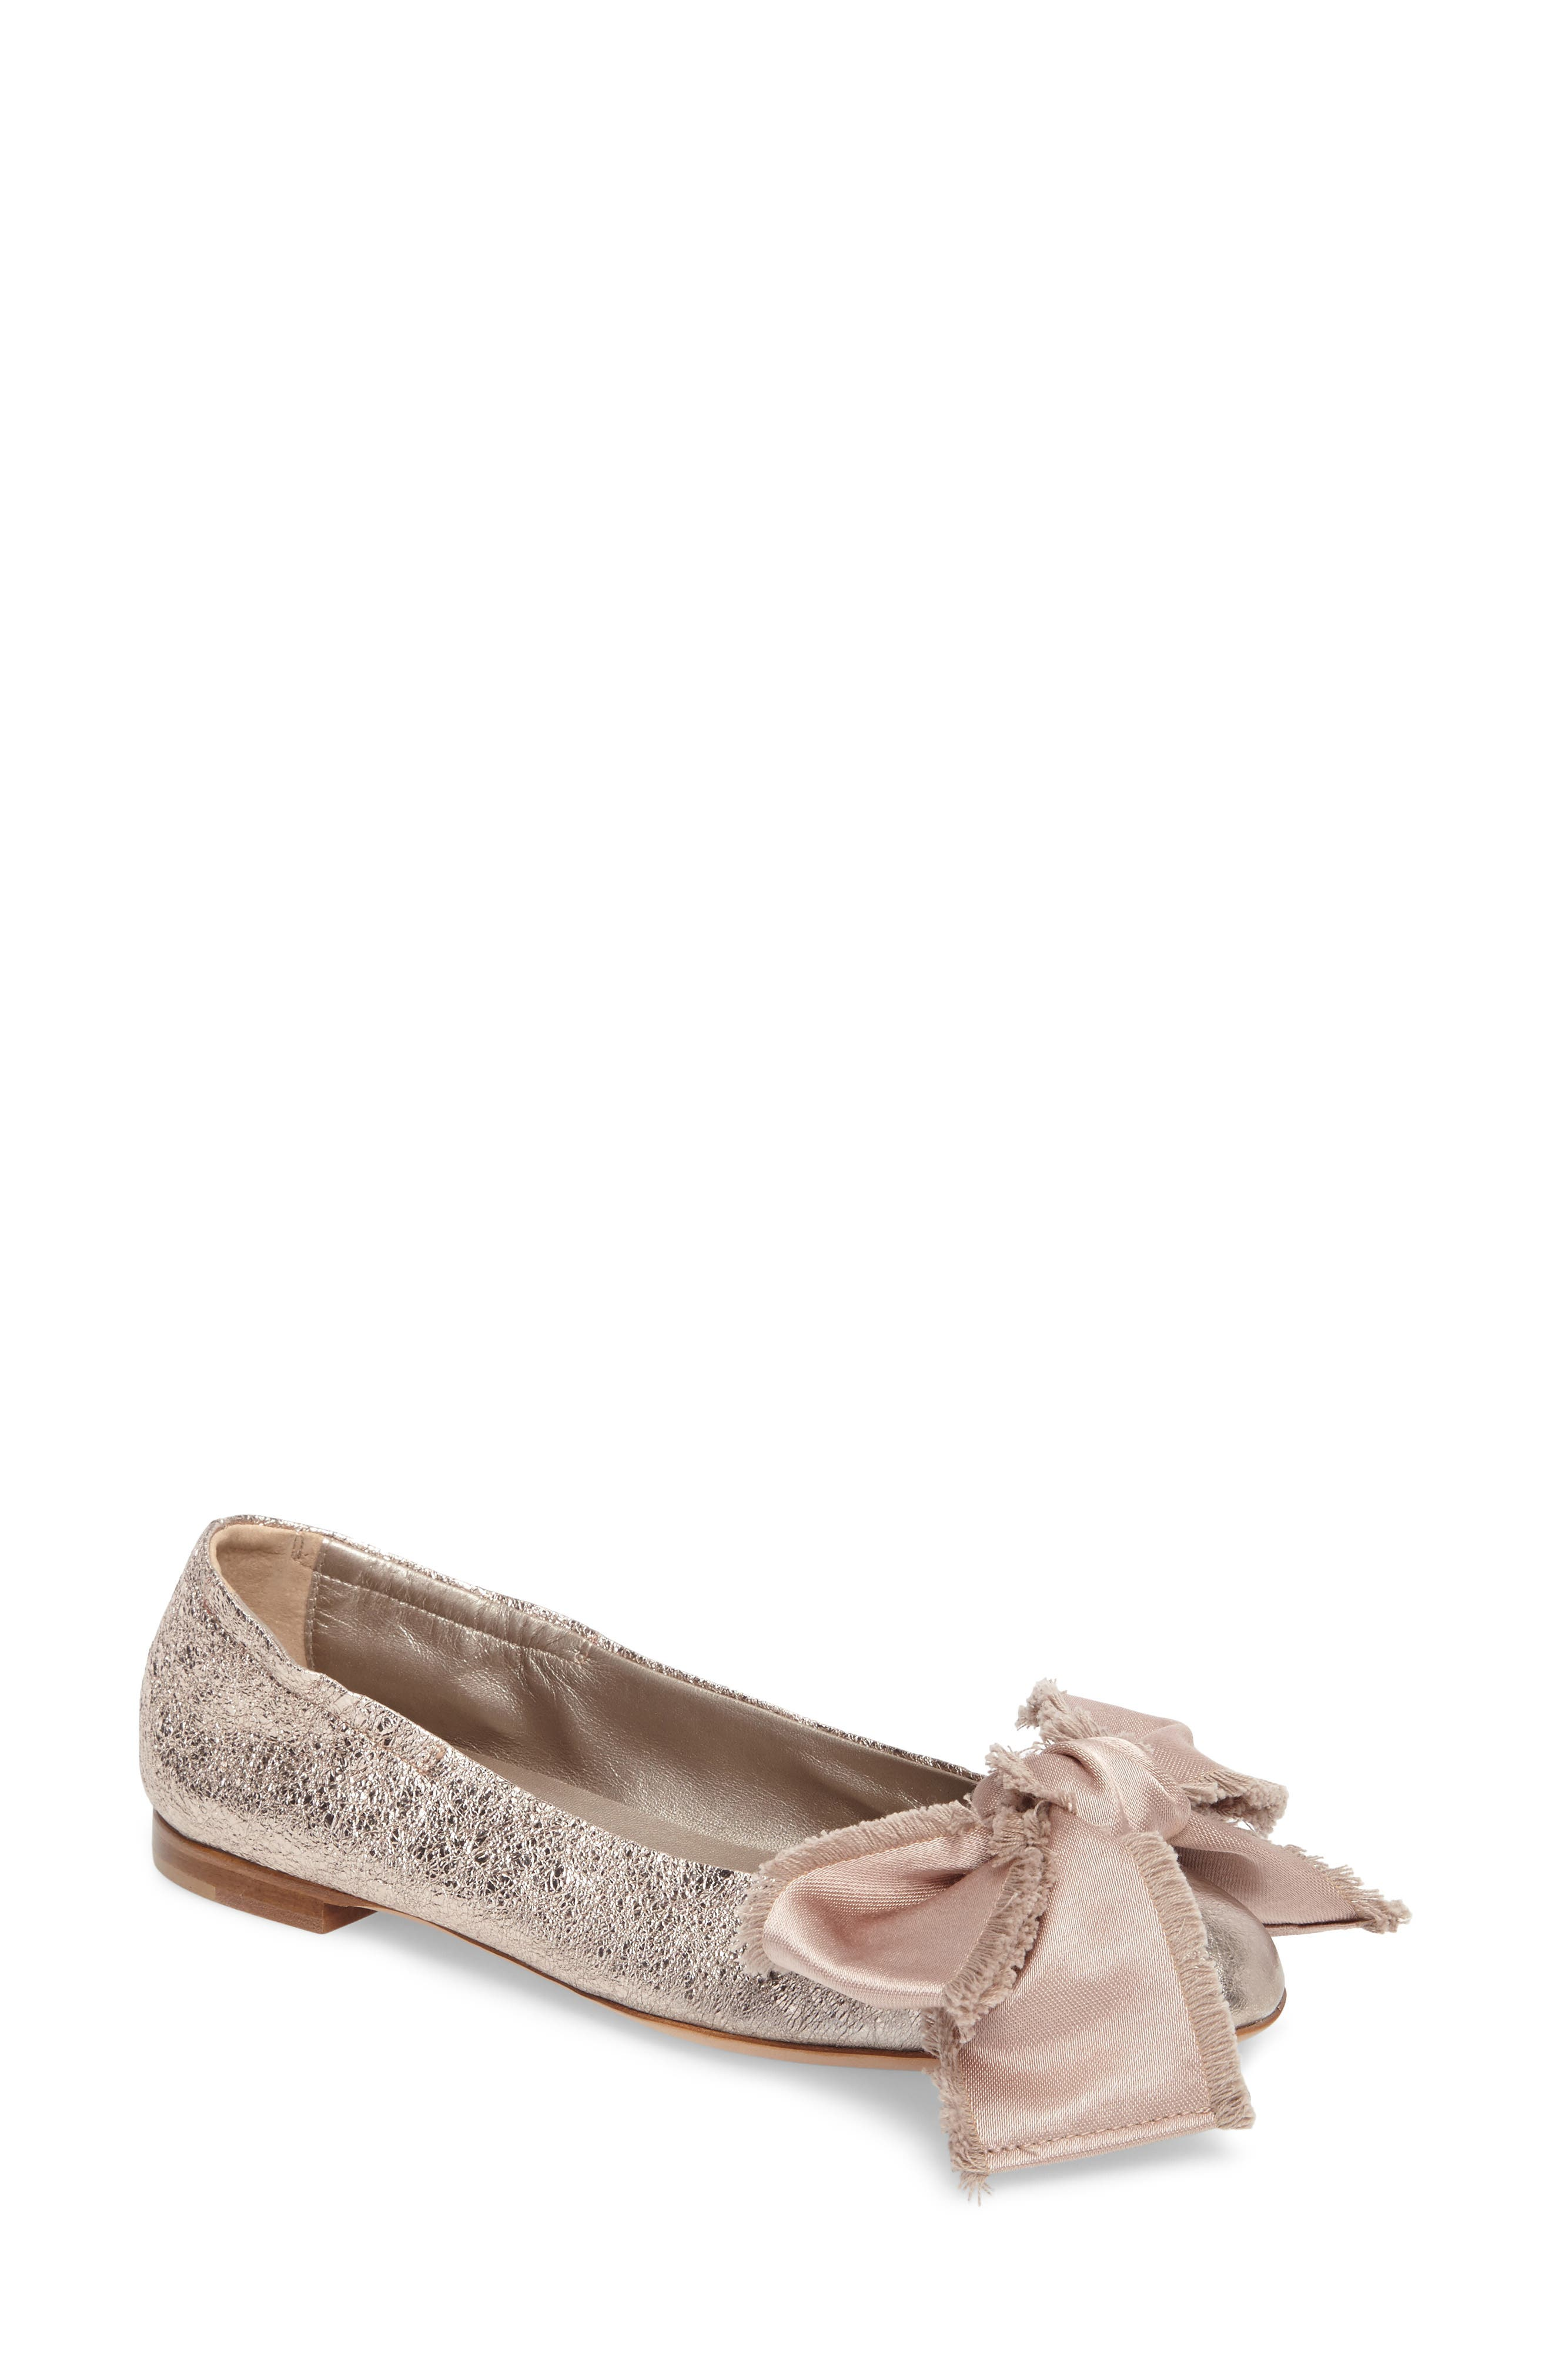 Satin Bow Ballet Flat,                             Main thumbnail 1, color,                             Pink Leather